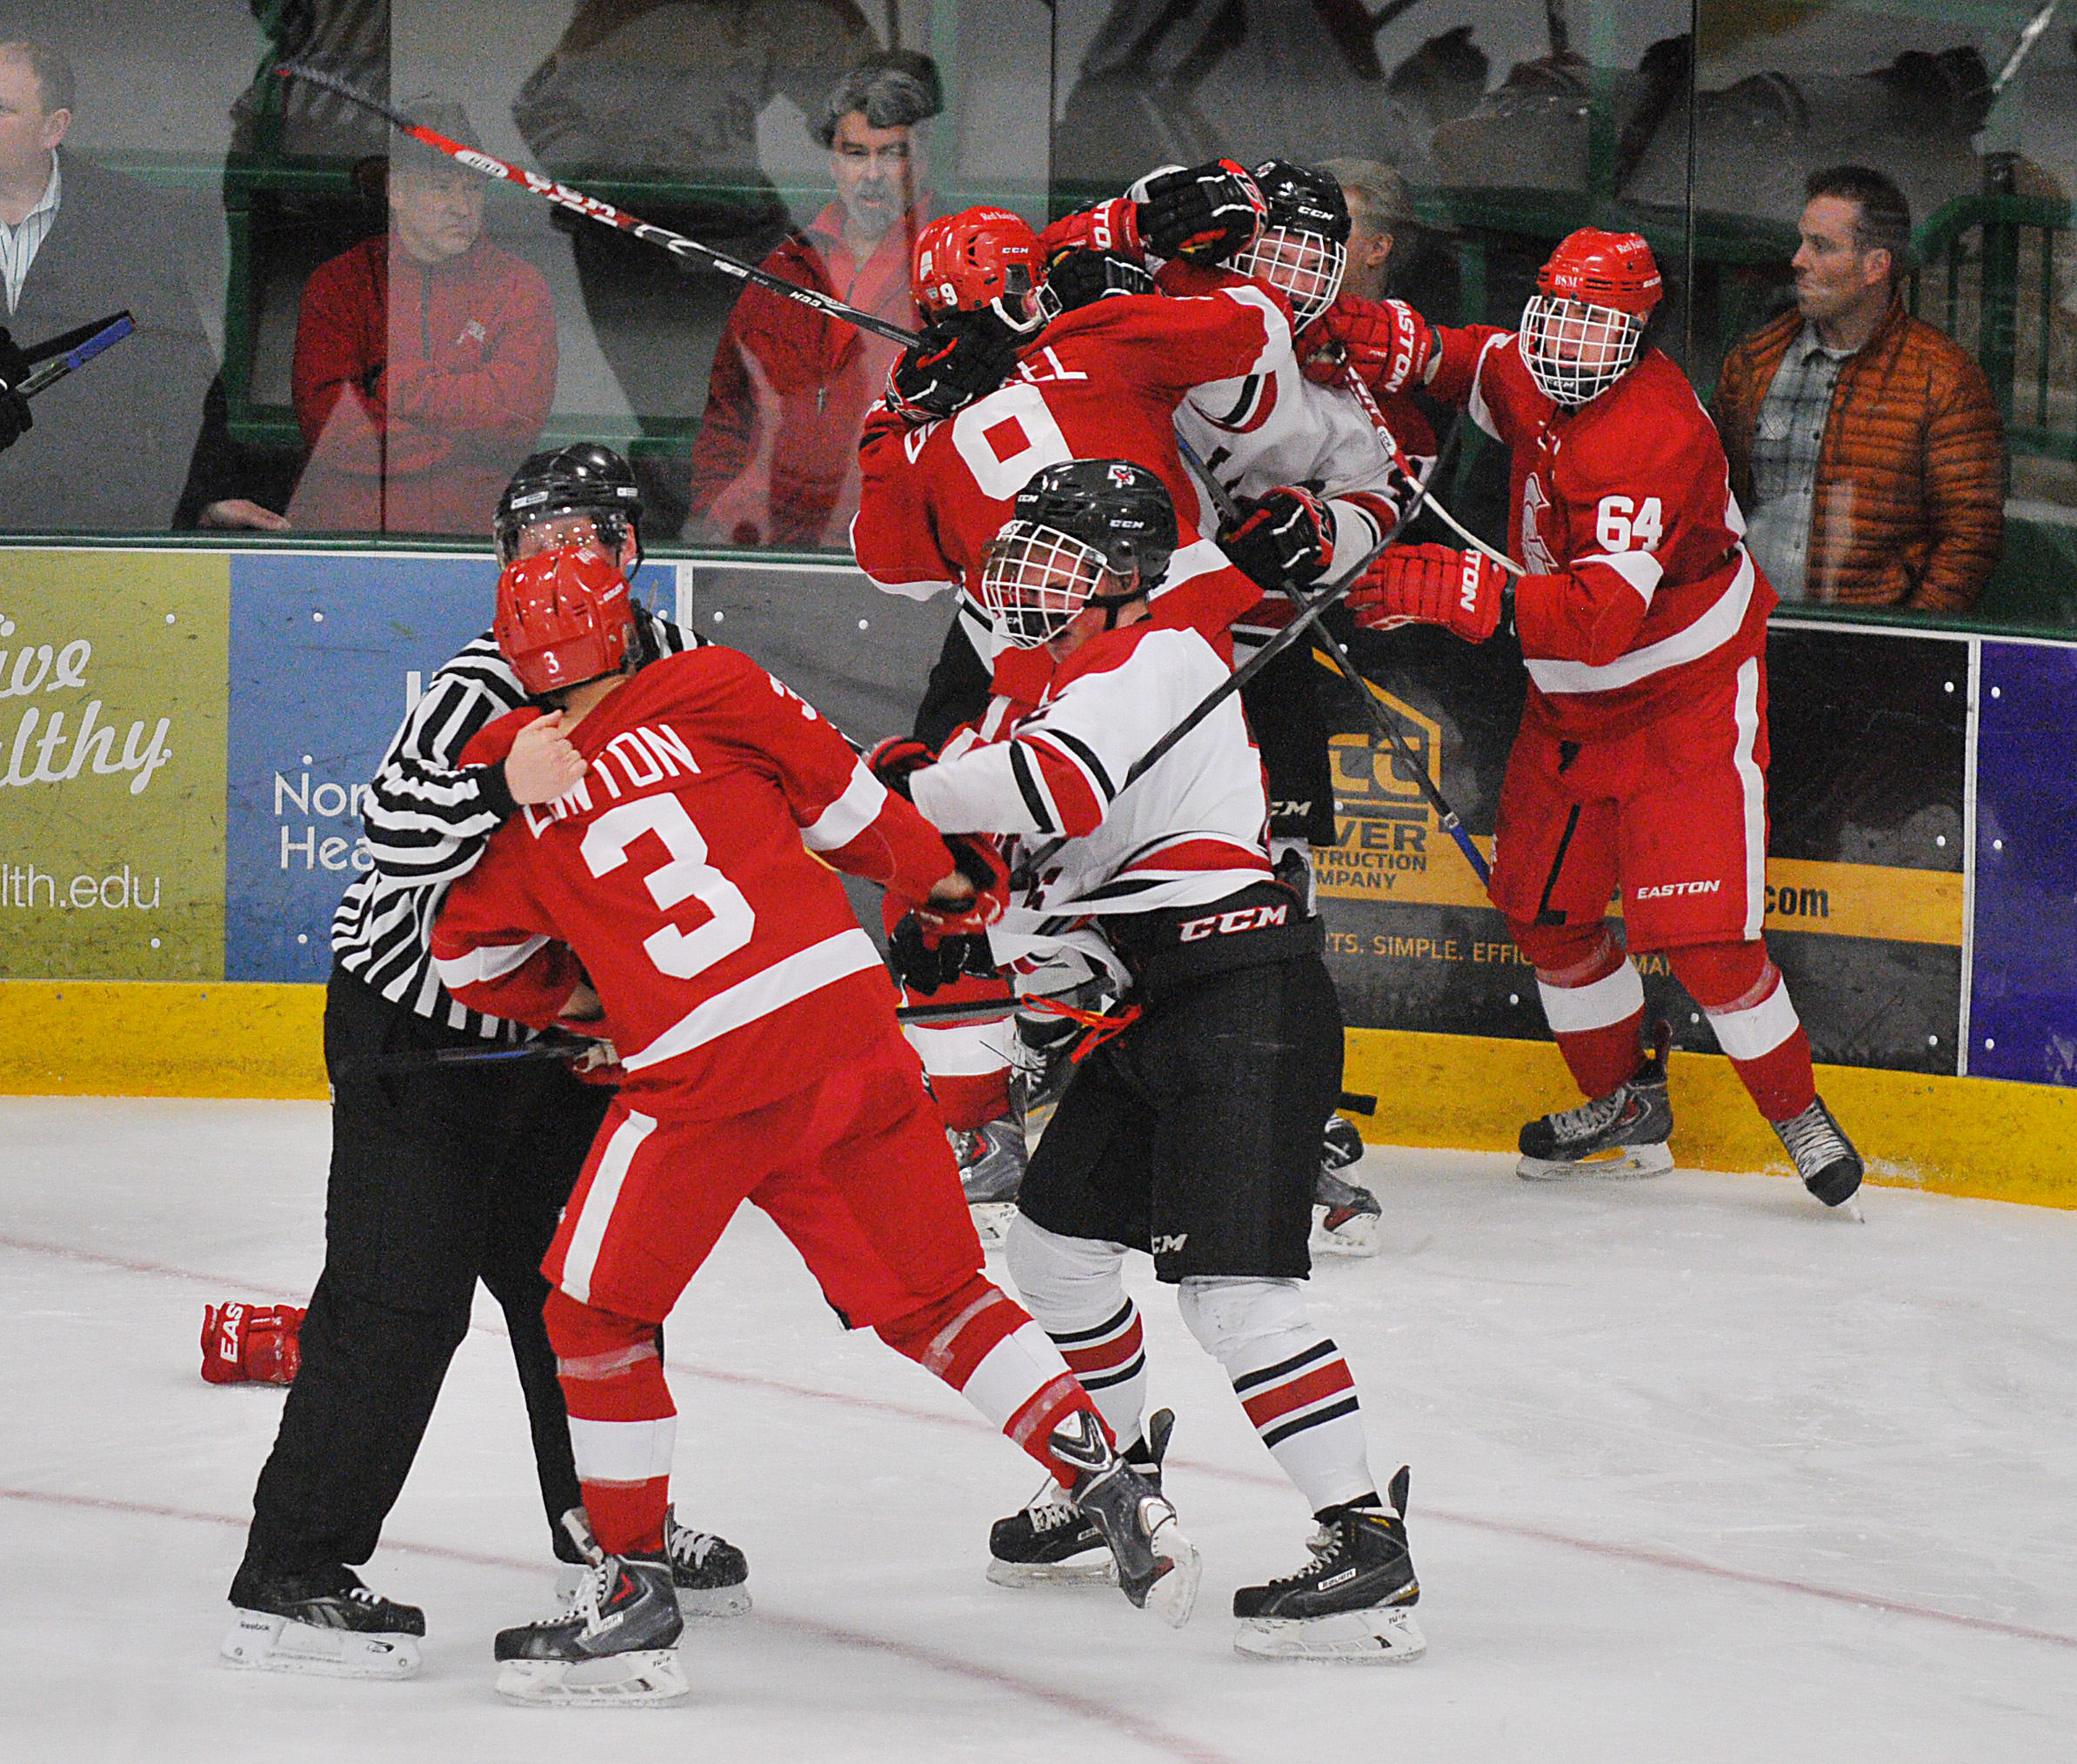 MN H.S.: Class 2A, Section 6 Semifinals - Game-ending Brawl At End Of 1-0 Win Costly For Eden Prairie